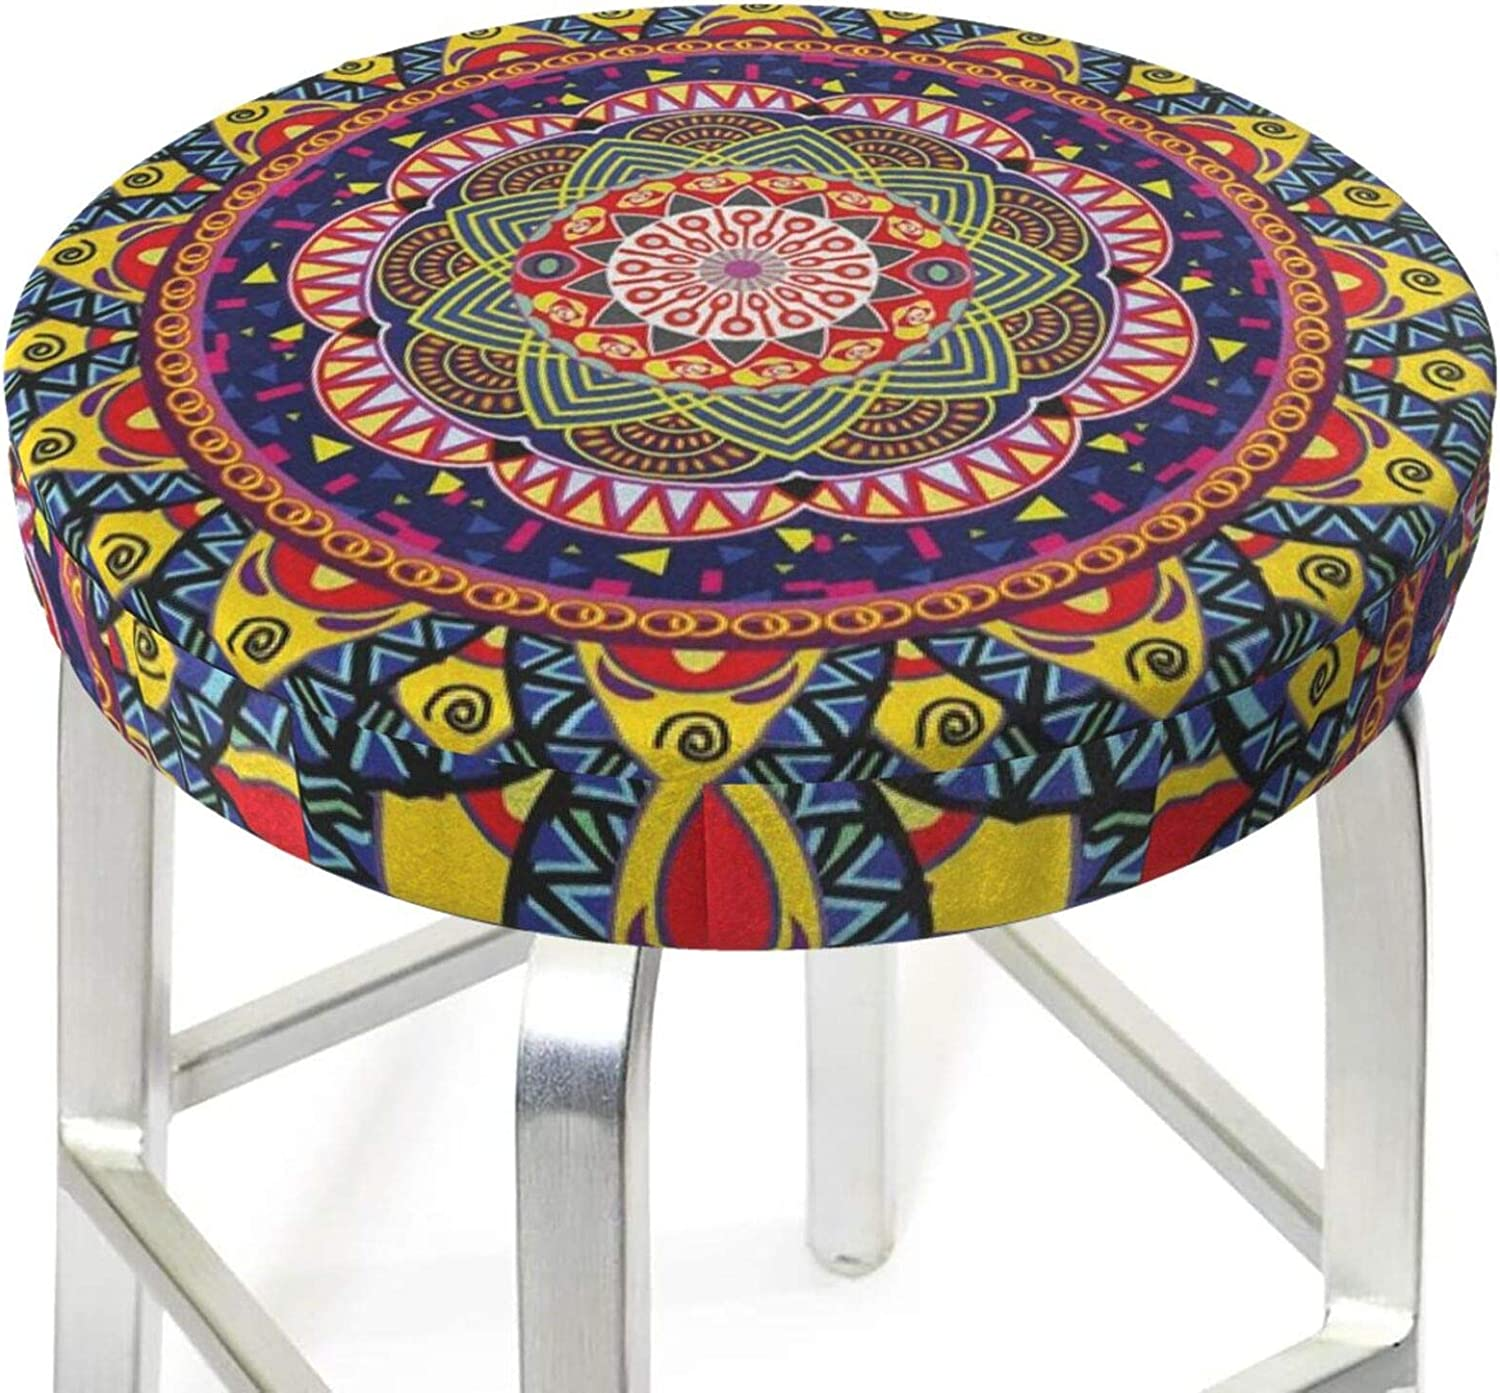 1pc Stool Cover Antislip Seat Cushion Bar Stool Protector Wear Resistant